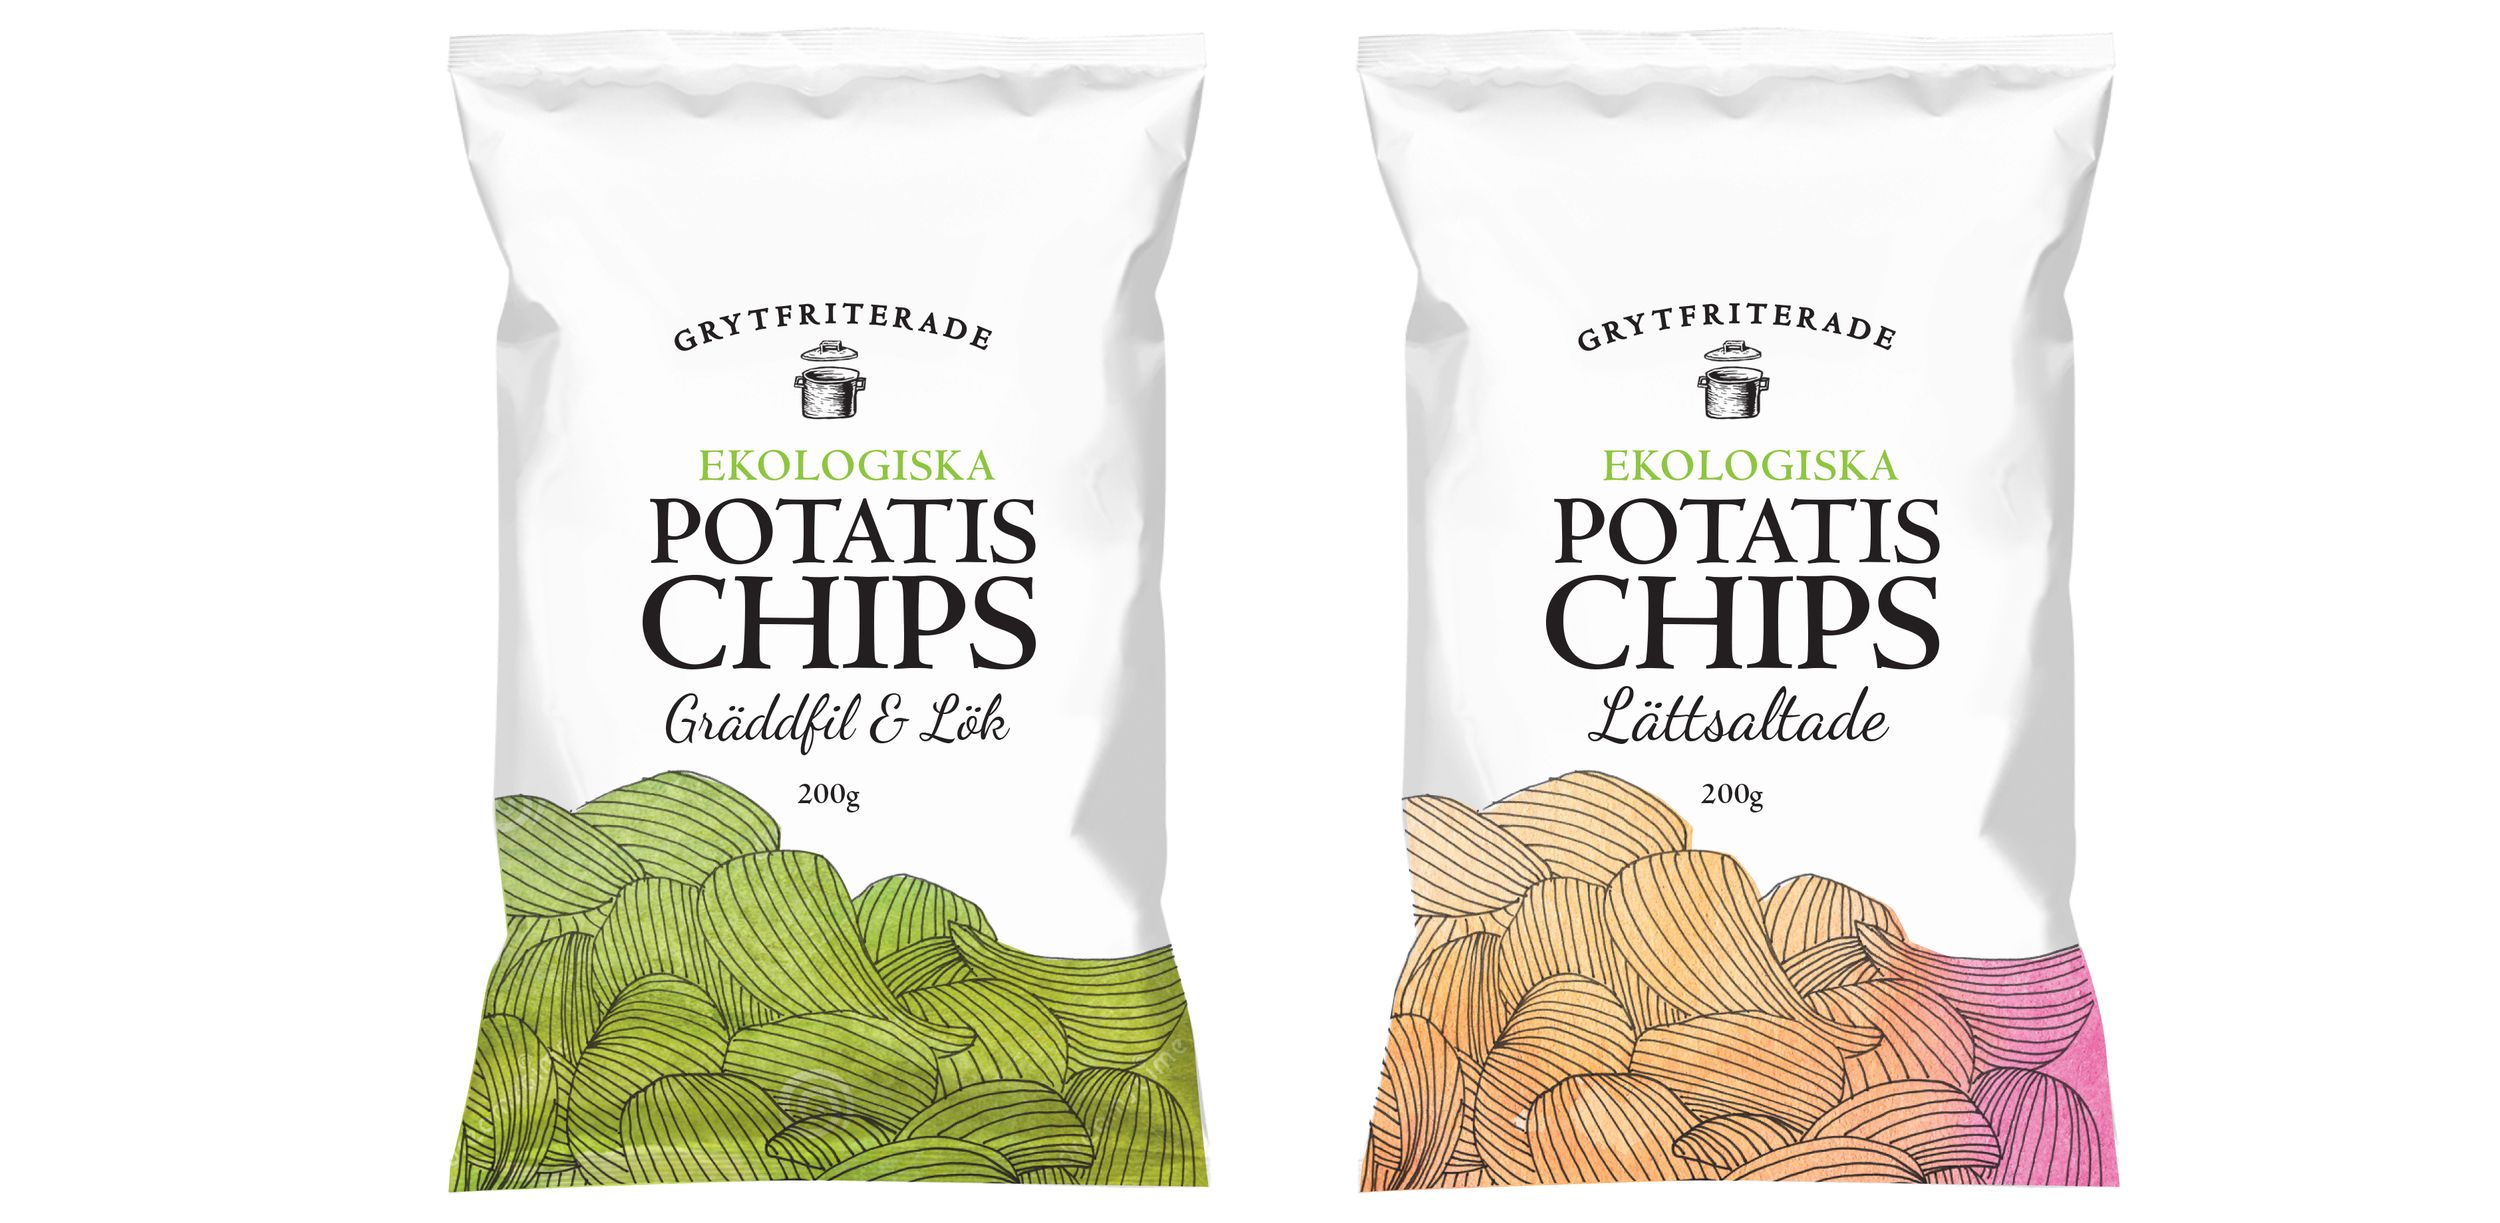 Illustration and design sketches for potato chip bags